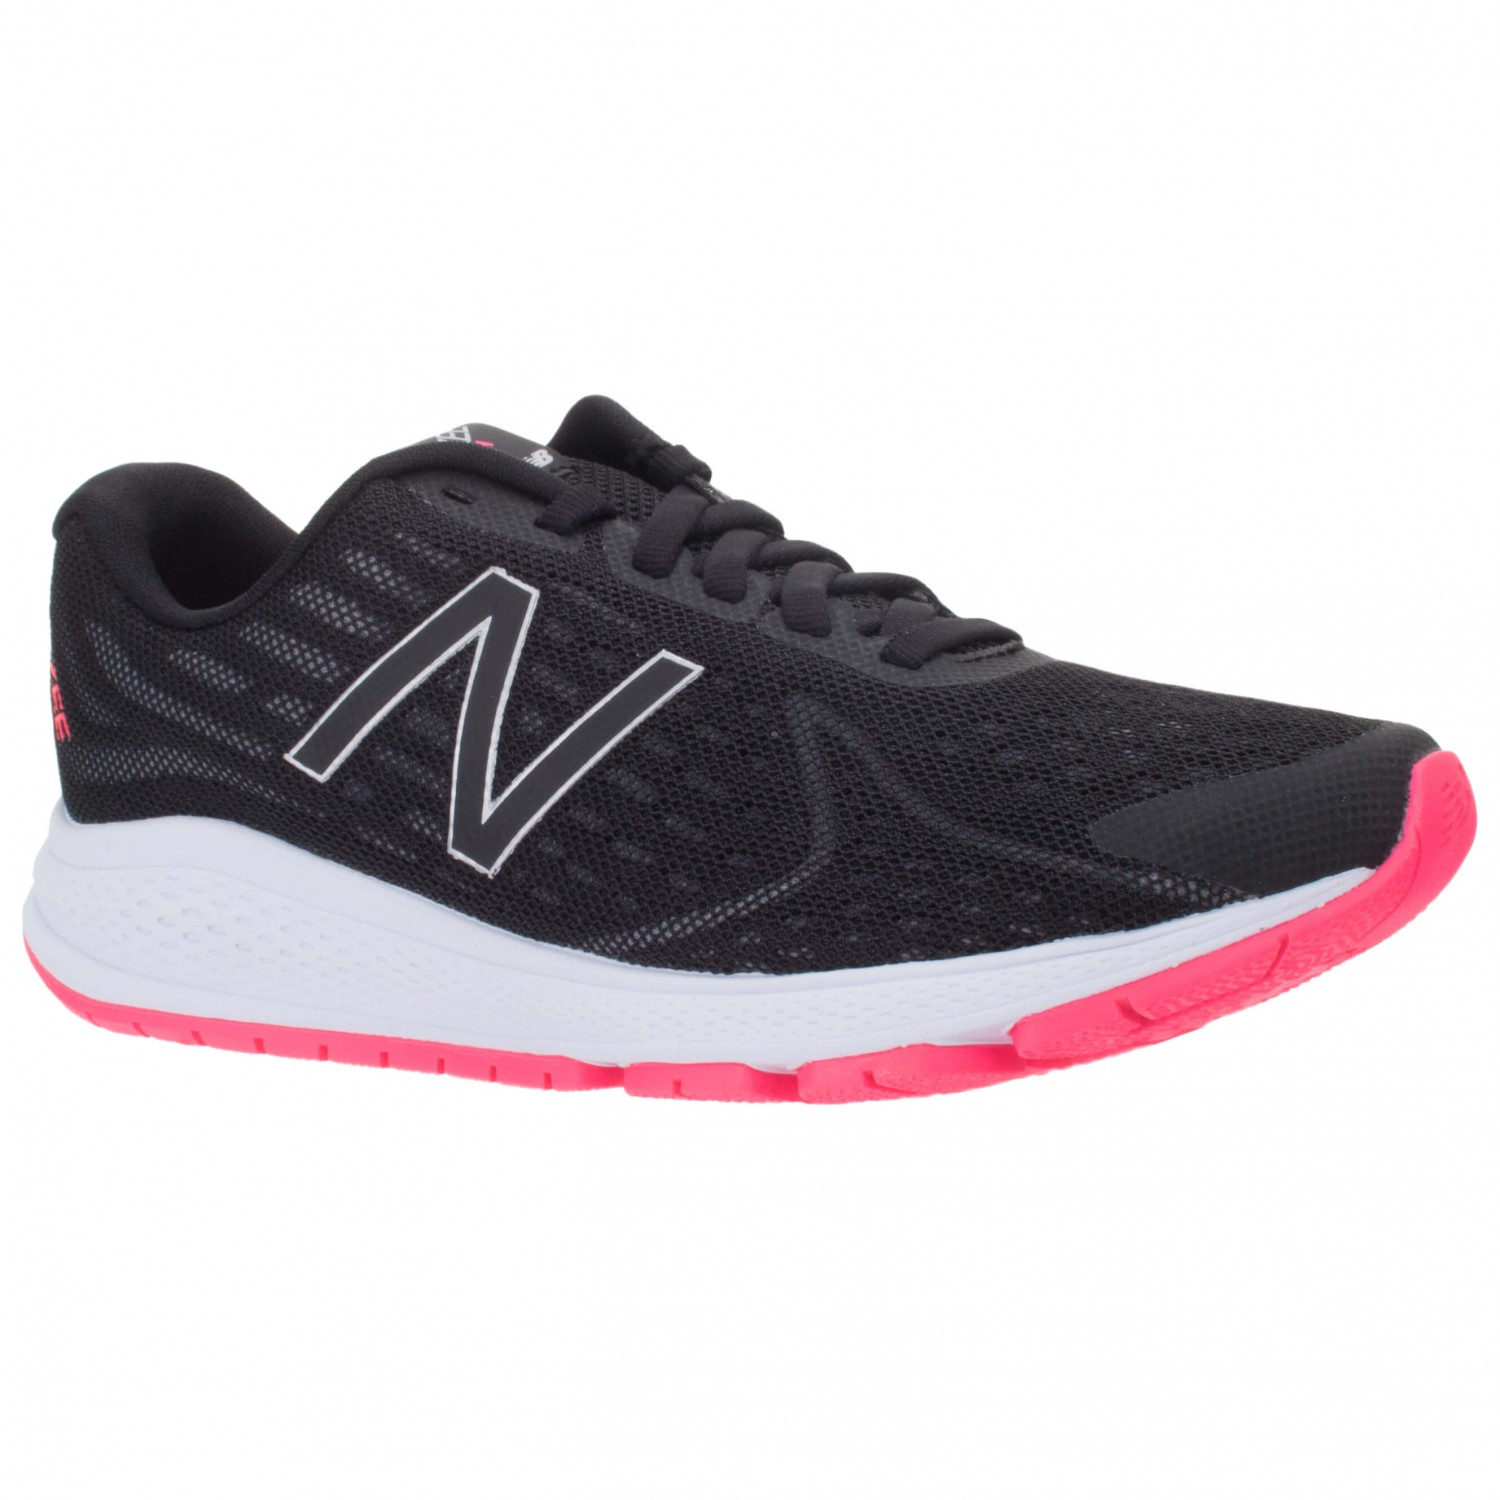 new balance vazee rush v2 running shoes women 39 s free uk delivery. Black Bedroom Furniture Sets. Home Design Ideas